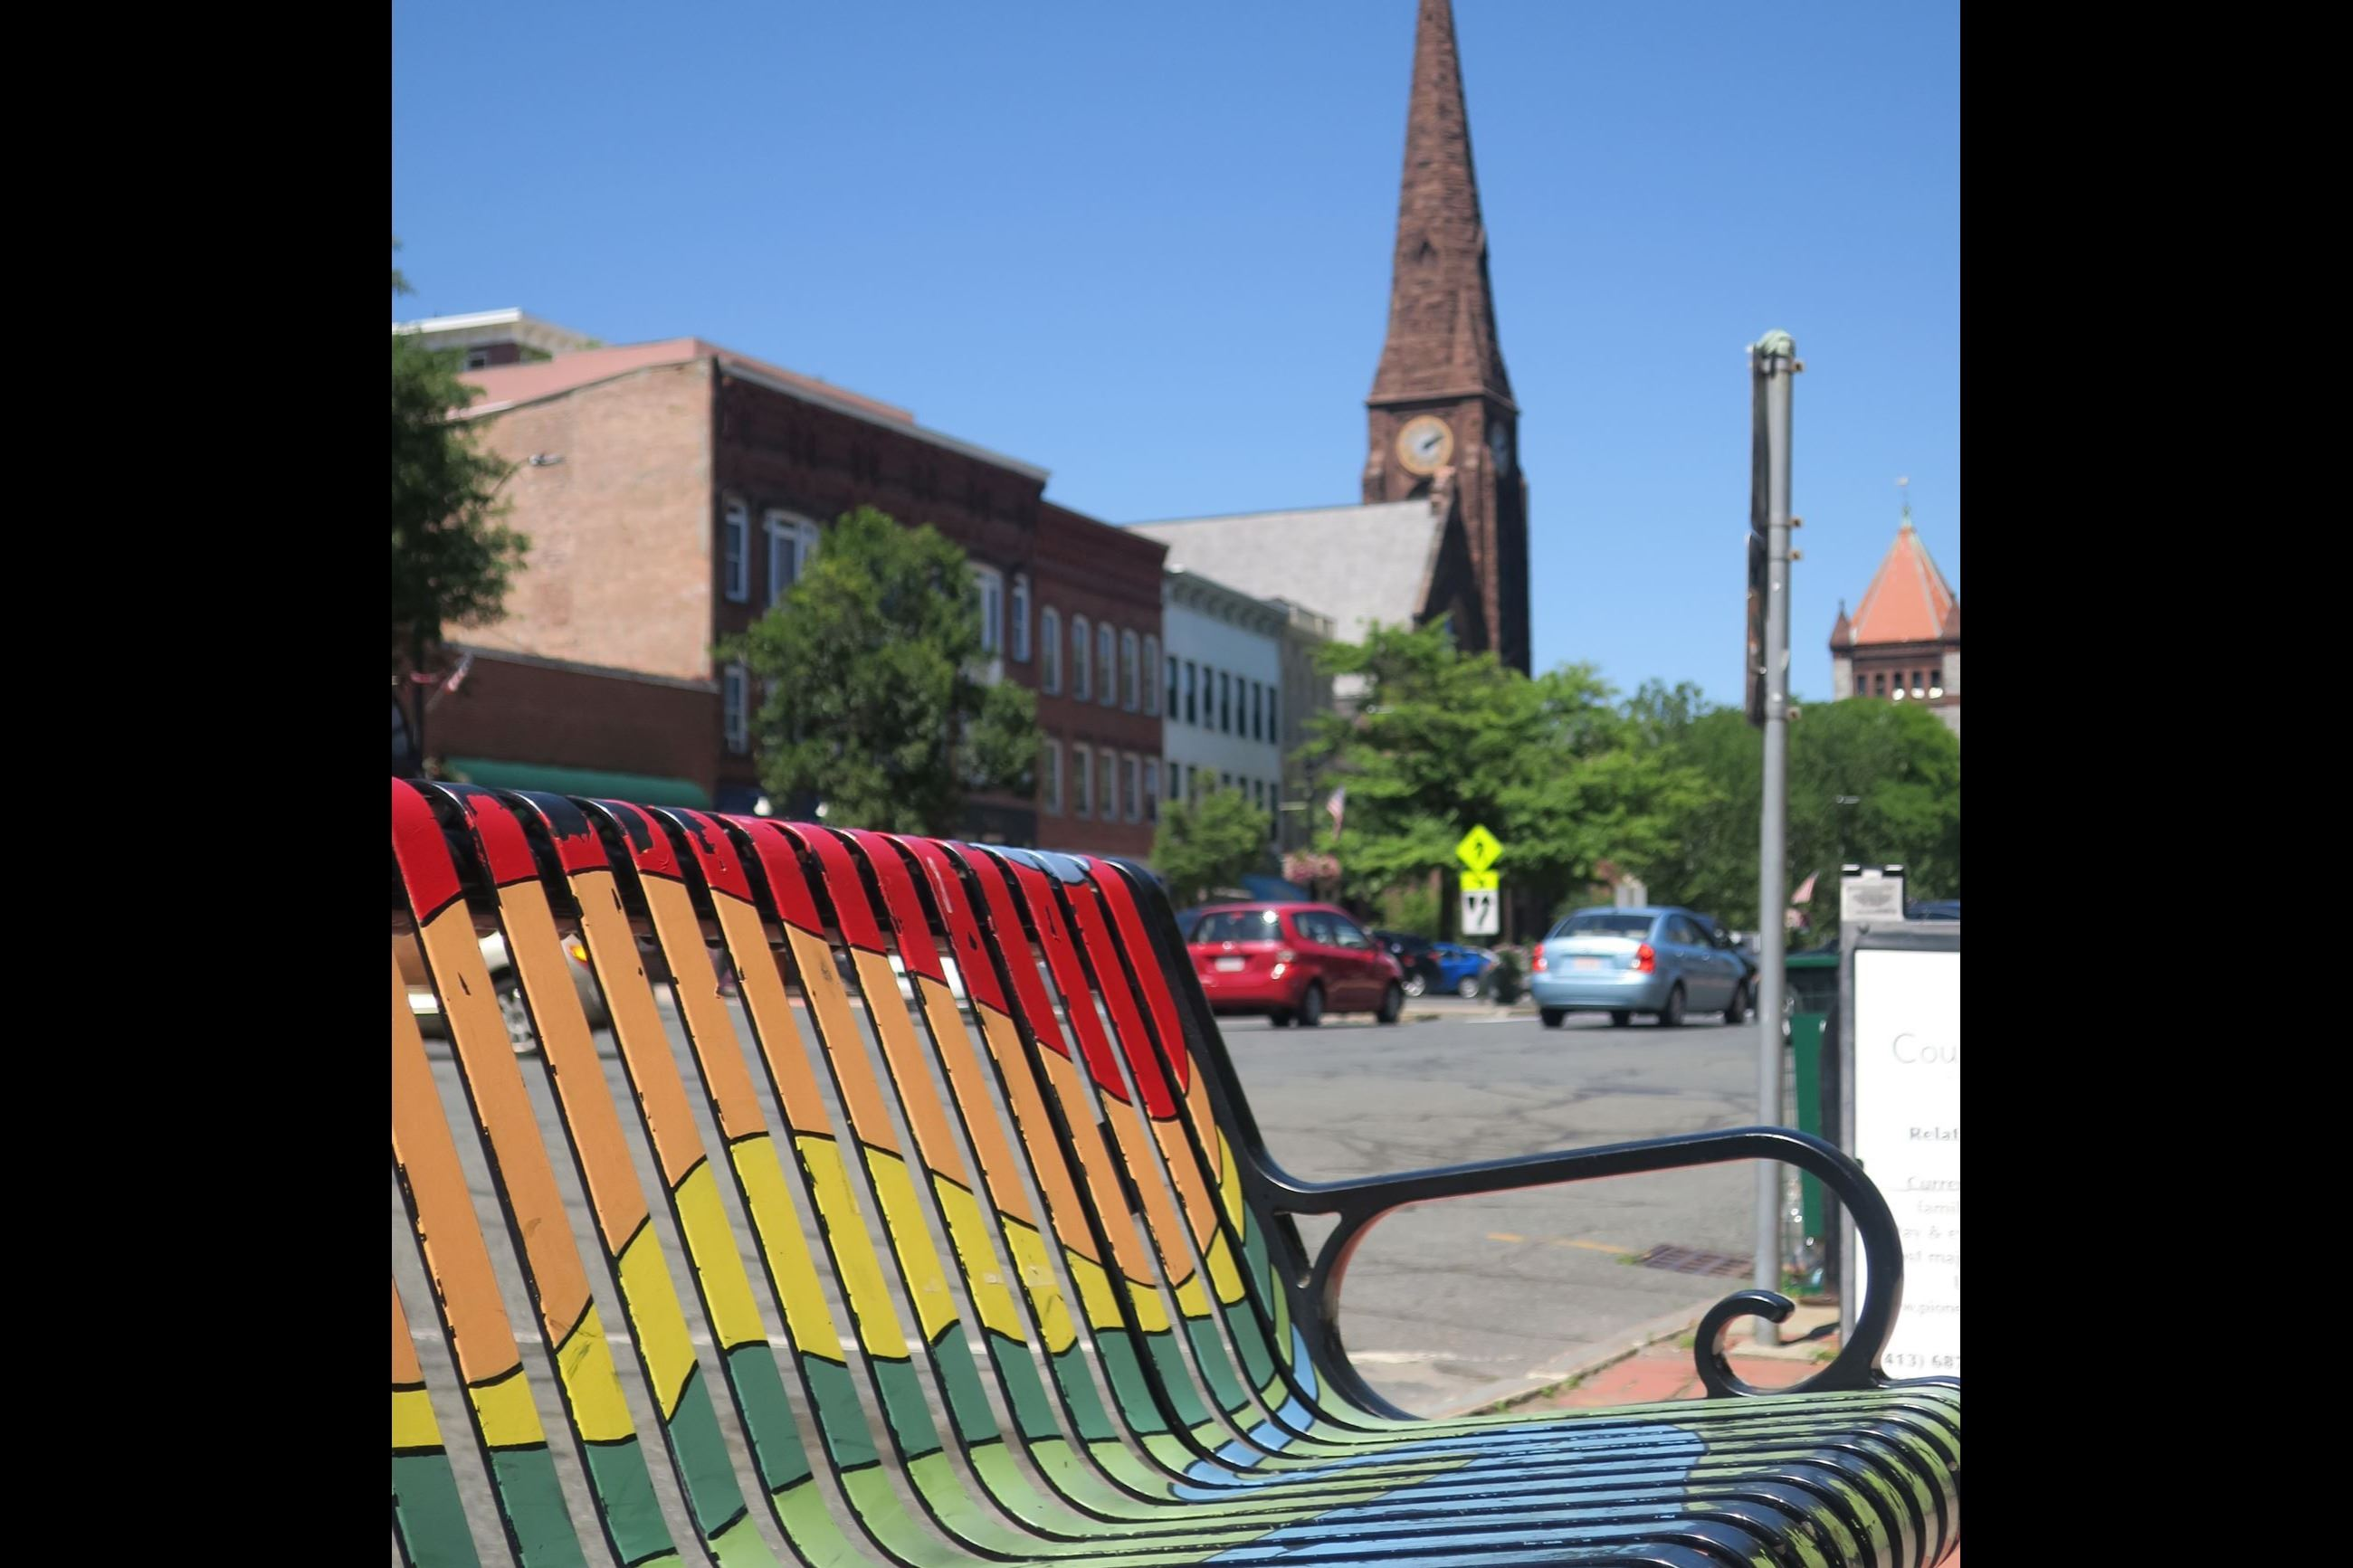 Main Street Bench painted with artwork